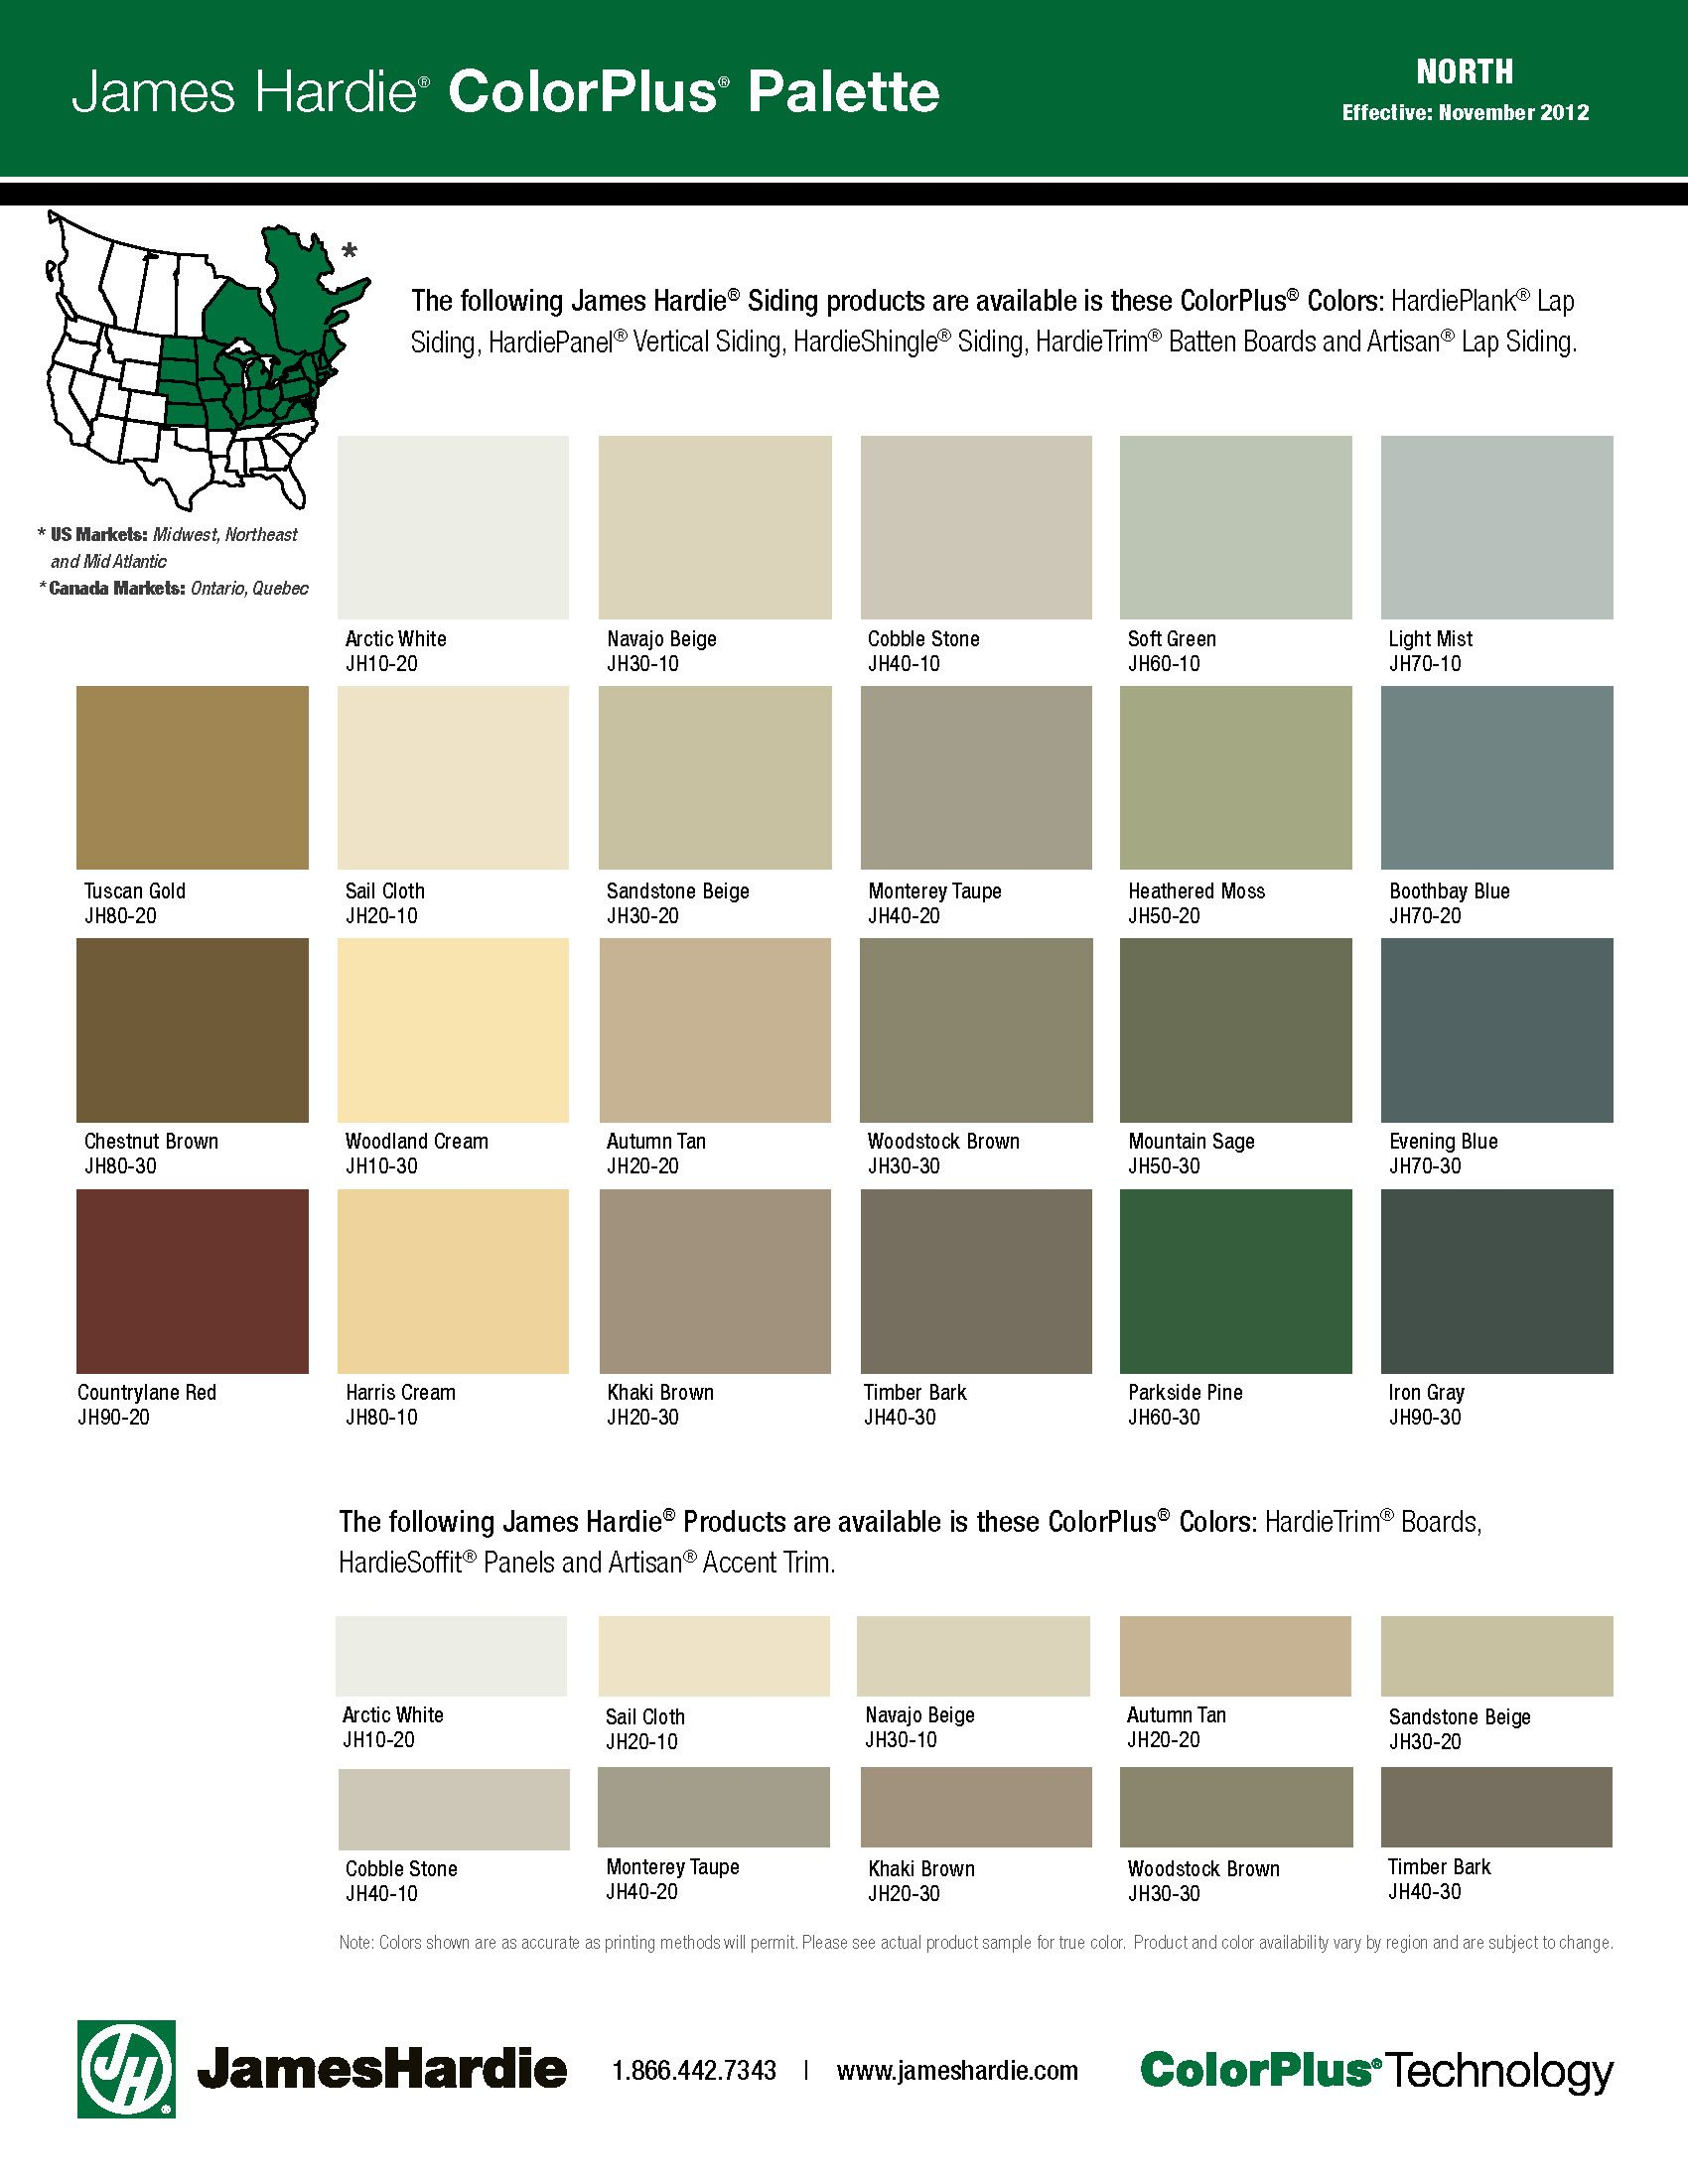 House colors on pinterest paint colors craftsman and james hardie - Hardie Color Palette Most Colours Available Contact Local Branch For Availability Gentek Bldg Supplies